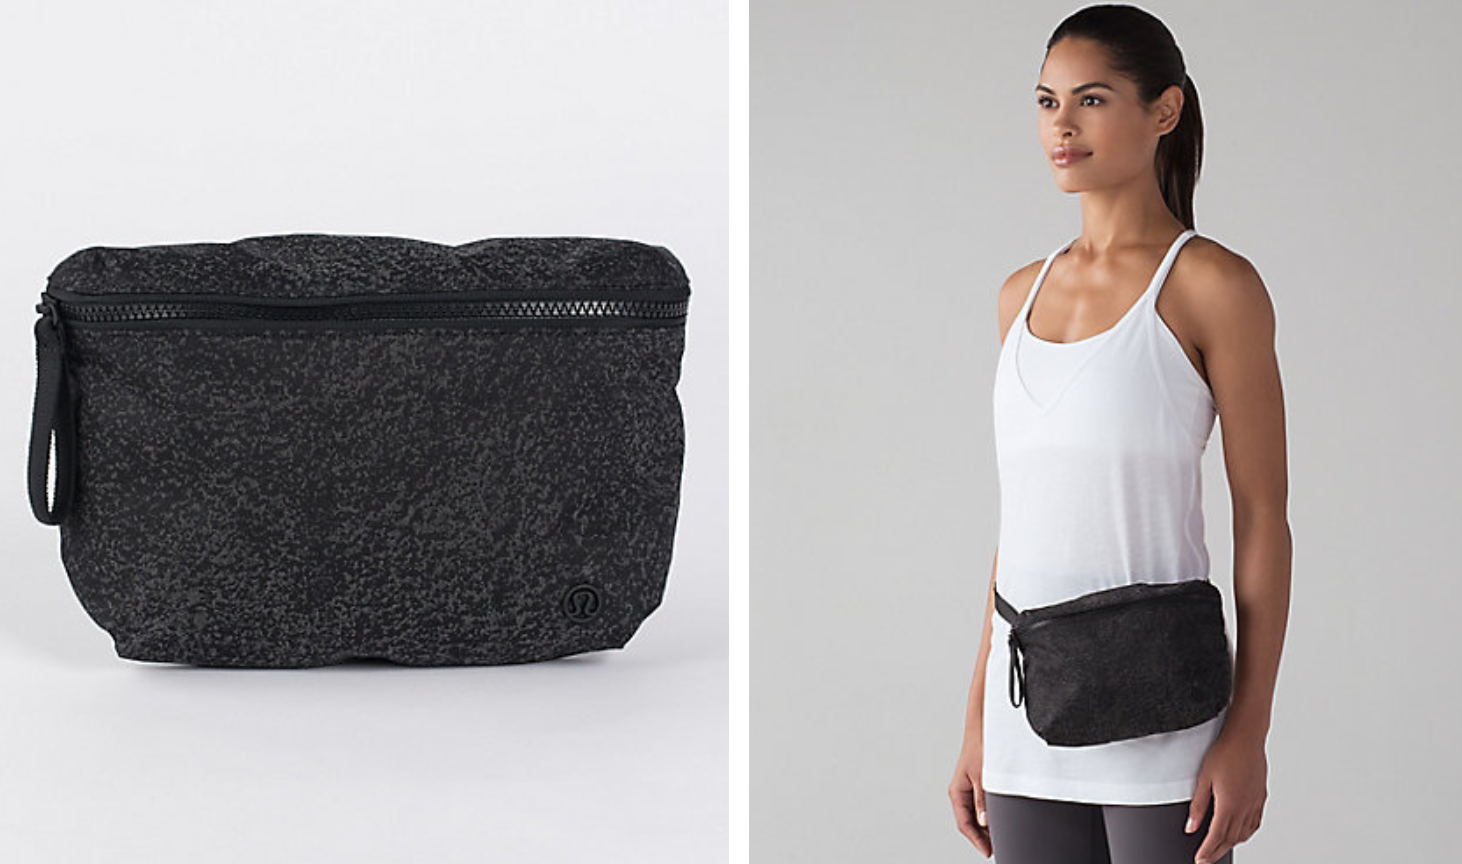 https://api.shopstyle.com/action/apiVisitRetailer?url=https%3A%2F%2Fshop.lululemon.com%2Fp%2Fbags%2FGo-Lightly-Belt-Bag-Reflective%2F_%2Fprod8430917%3Frcnt%3D83%26N%3D1z13ziiZ7vf%26cnt%3D85%26color%3DLW9AHRS_028918&site=www.shopstyle.ca&pid=uid6784-25288972-7